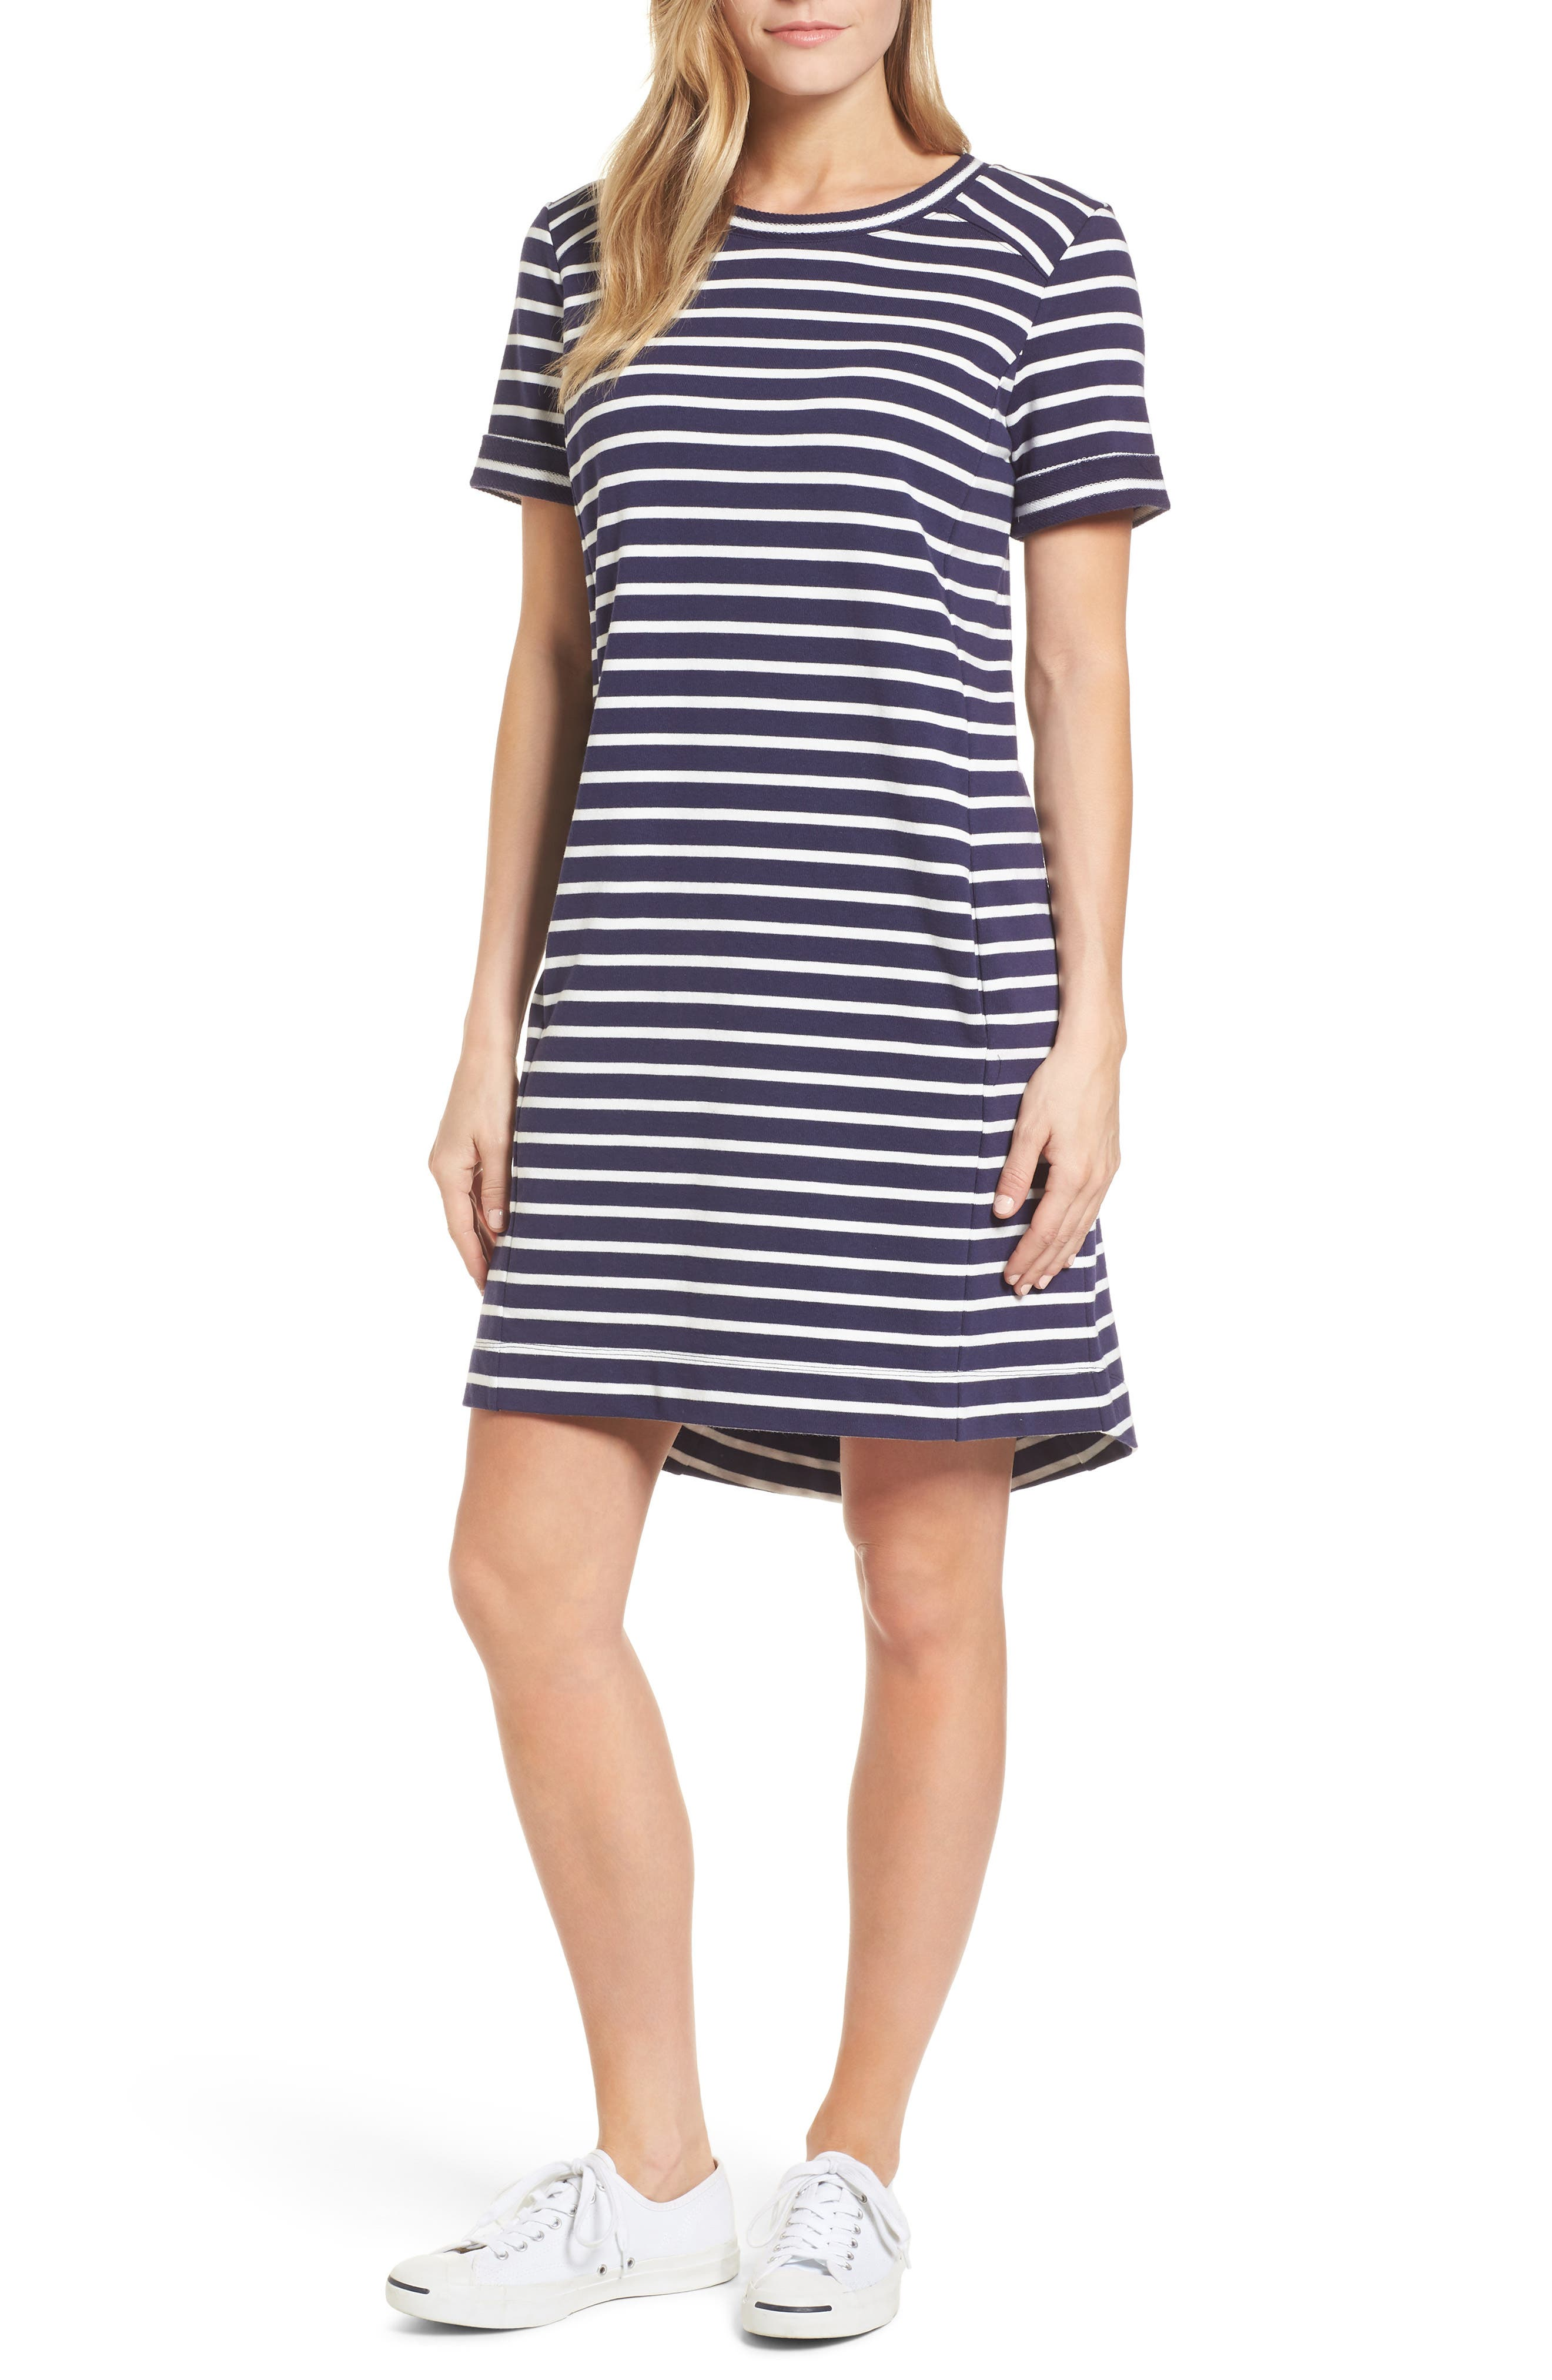 Short Sleeve Cotton Blend Dress,                             Main thumbnail 1, color,                             Navy- Ivory